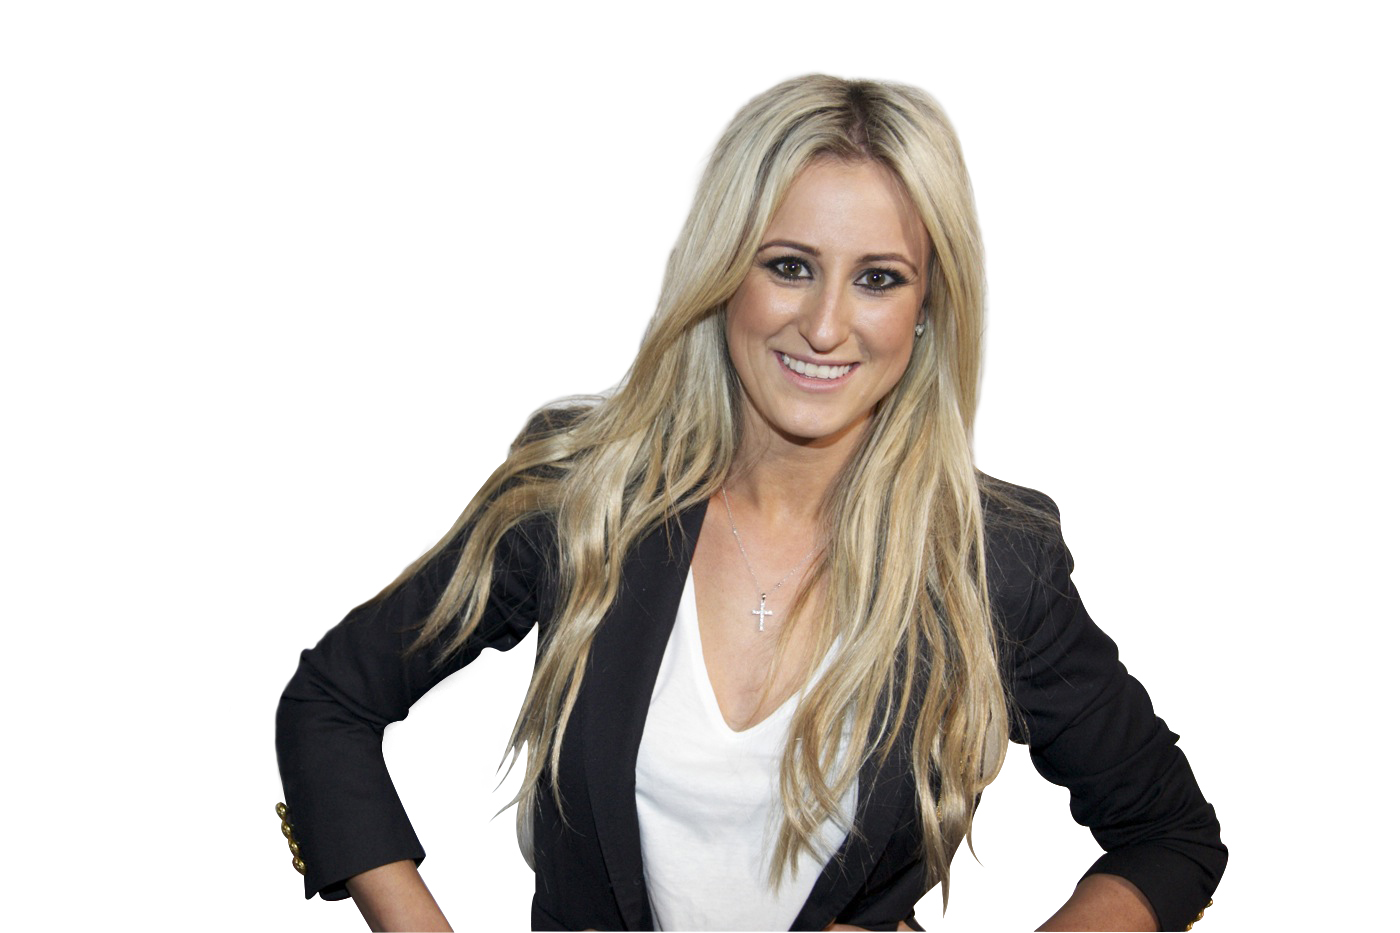 Roxy Jacenko nudes (64 photos), video Bikini, YouTube, bra 2020